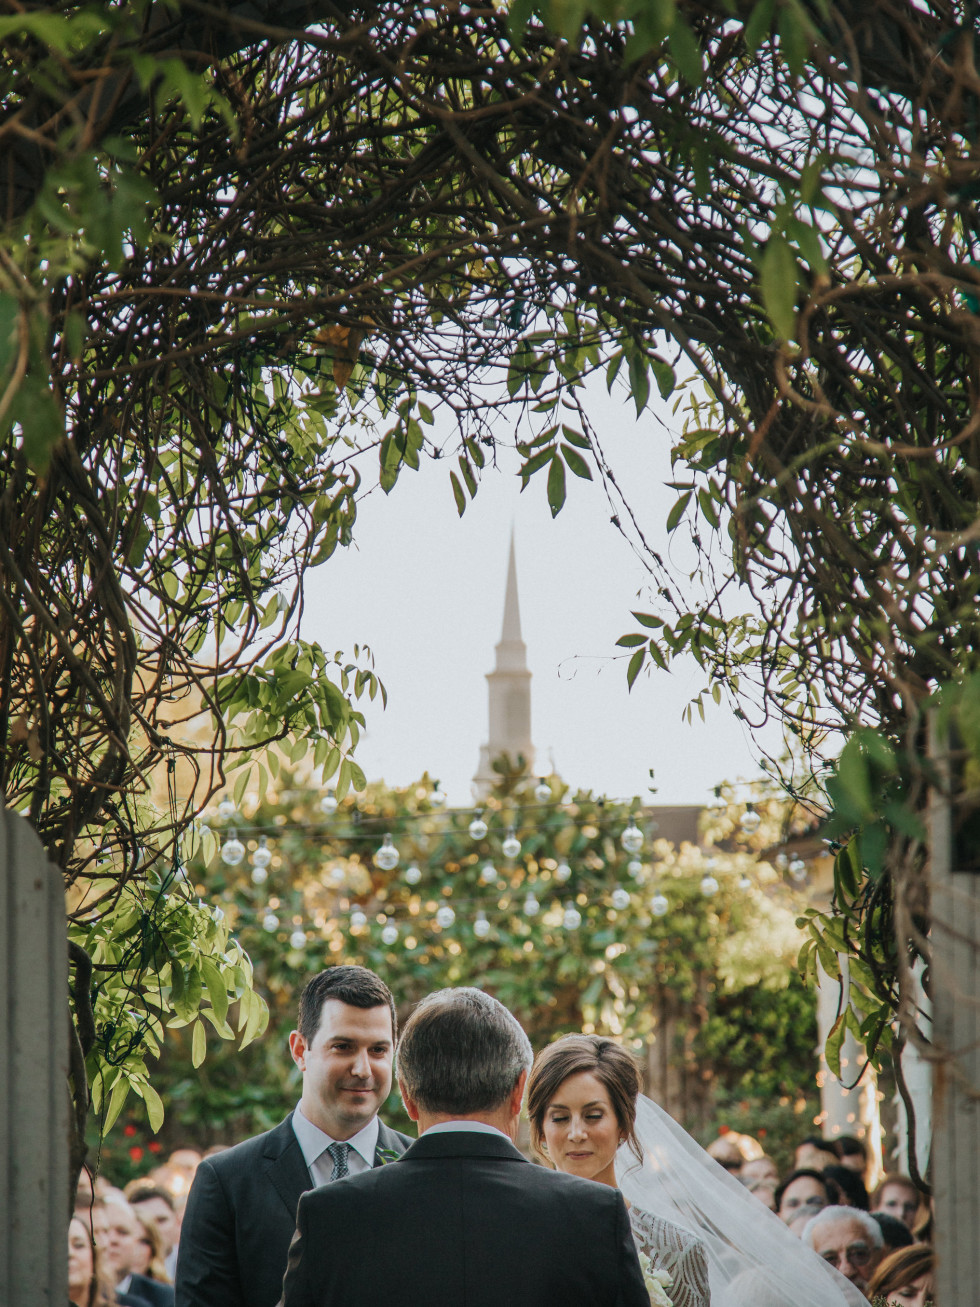 Outdoor vows, steeple